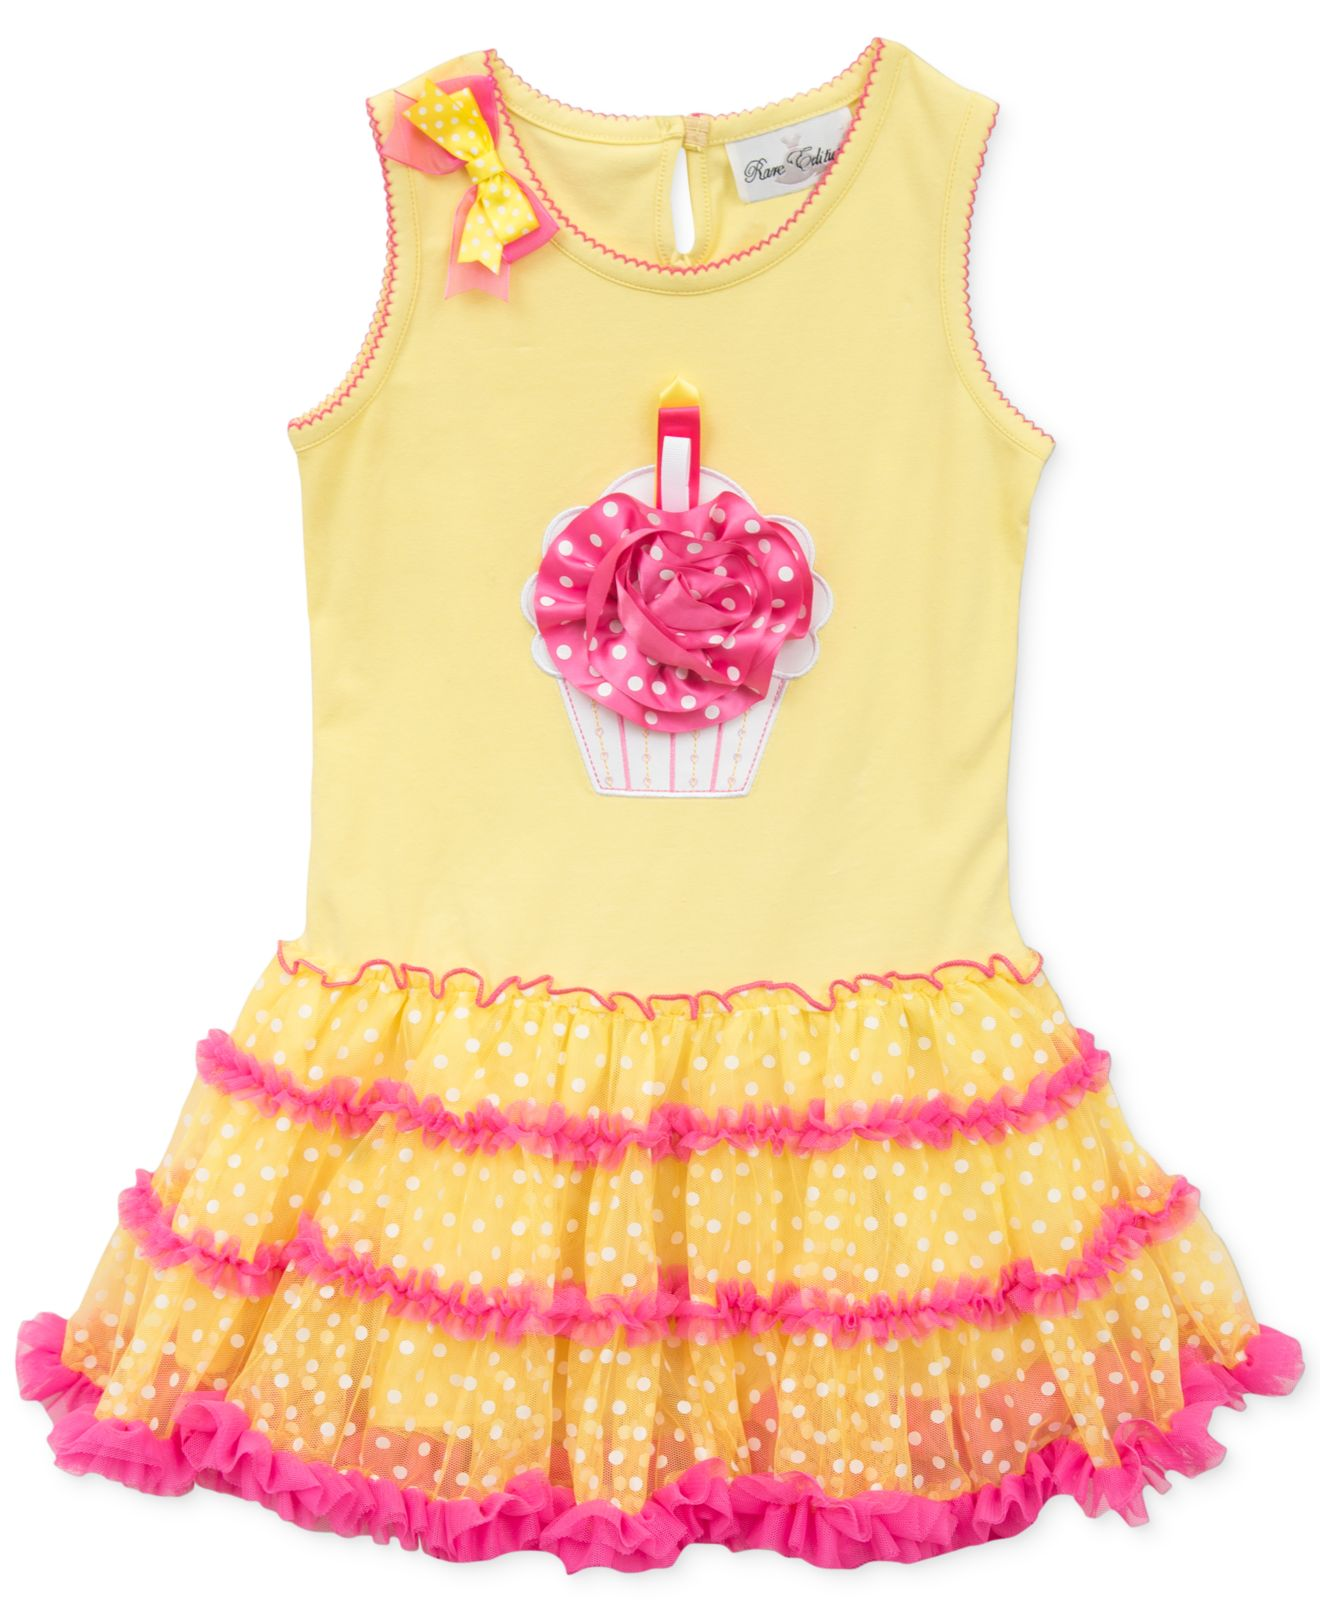 Little Girl Mart is full of affordable stylish little girl clothes and wholesale accessories. Stock up on our favorite fashionable baby leg warmers, leggings, crochet hats, fedora hats, diva hats, glamorous sunglasses and trendy swimsuits all offered at wholesale pricing.